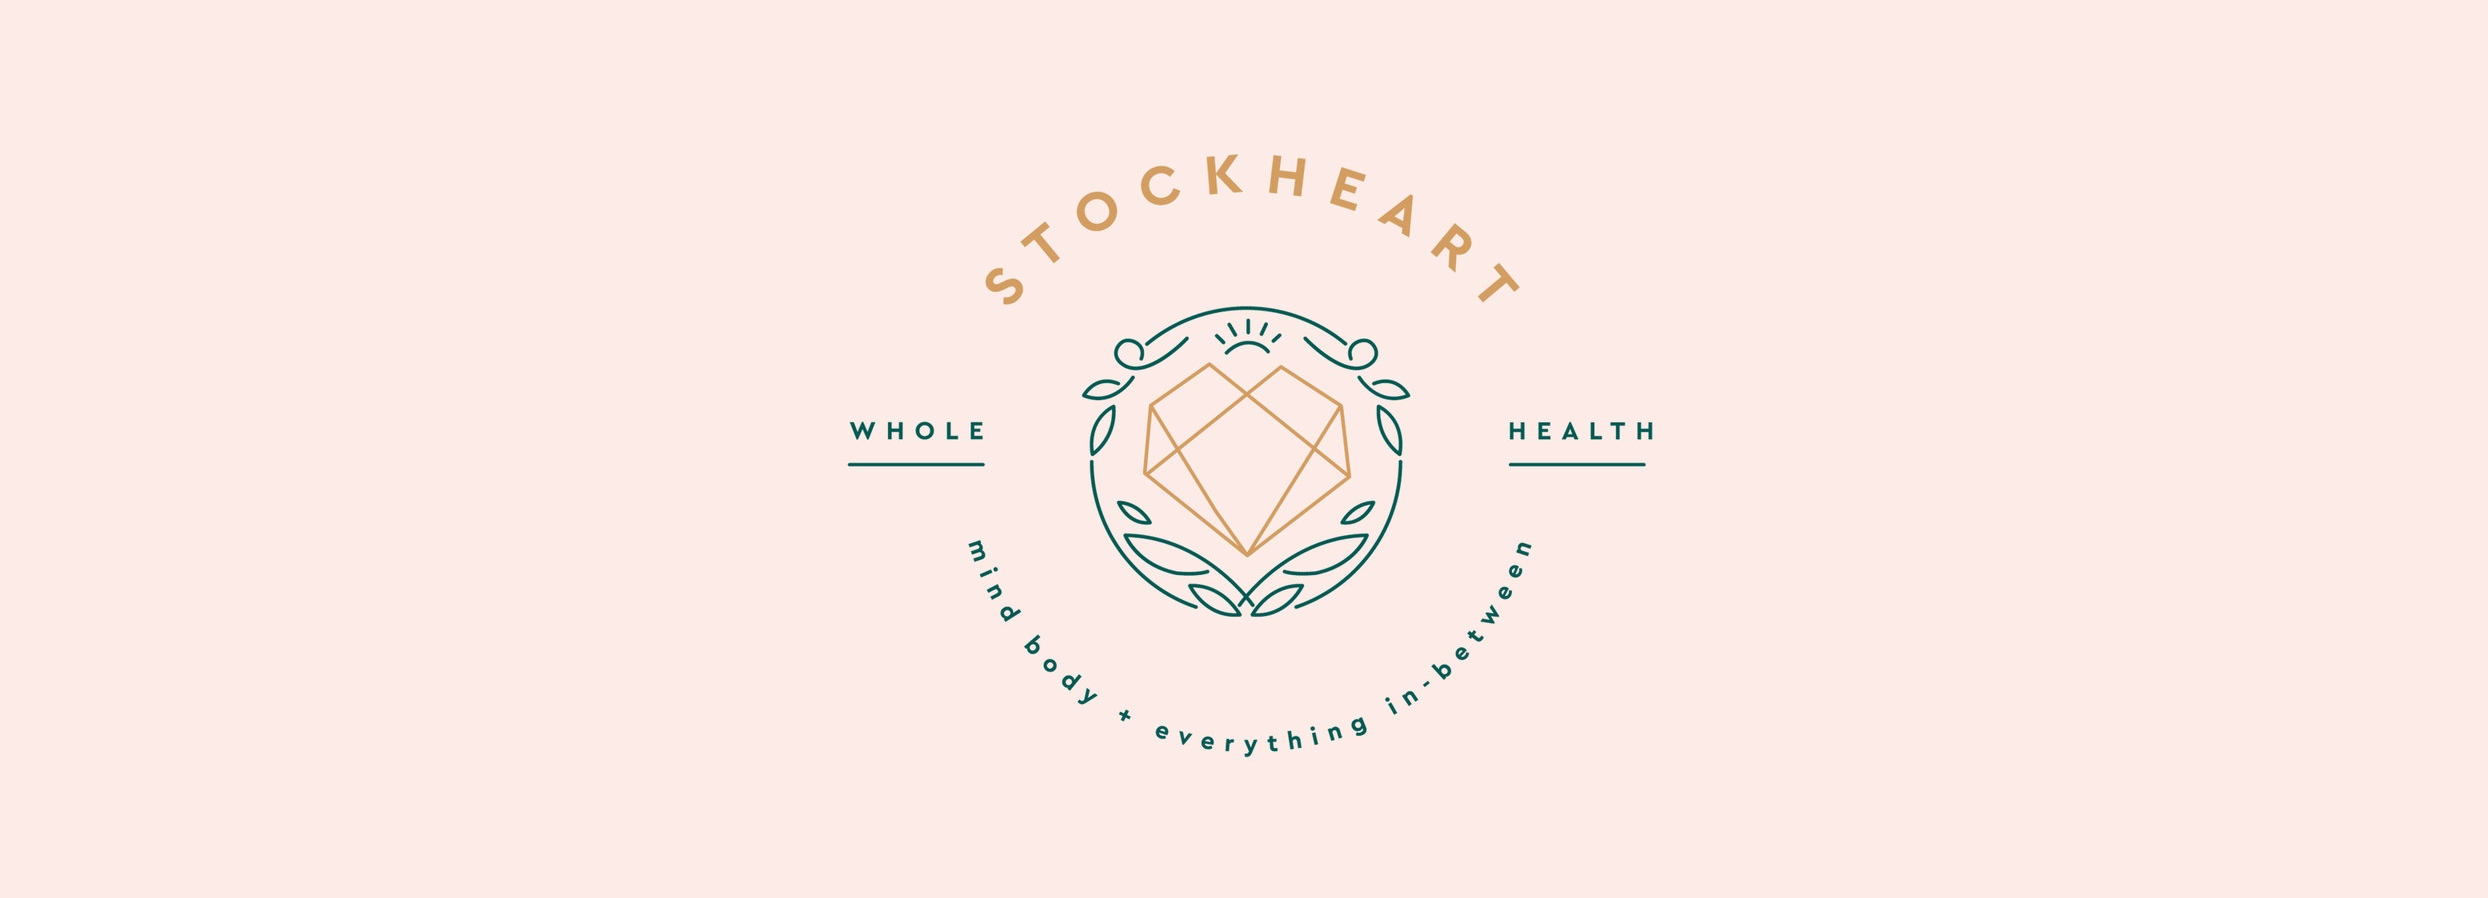 HAD__Stockheart_Logo.jpg